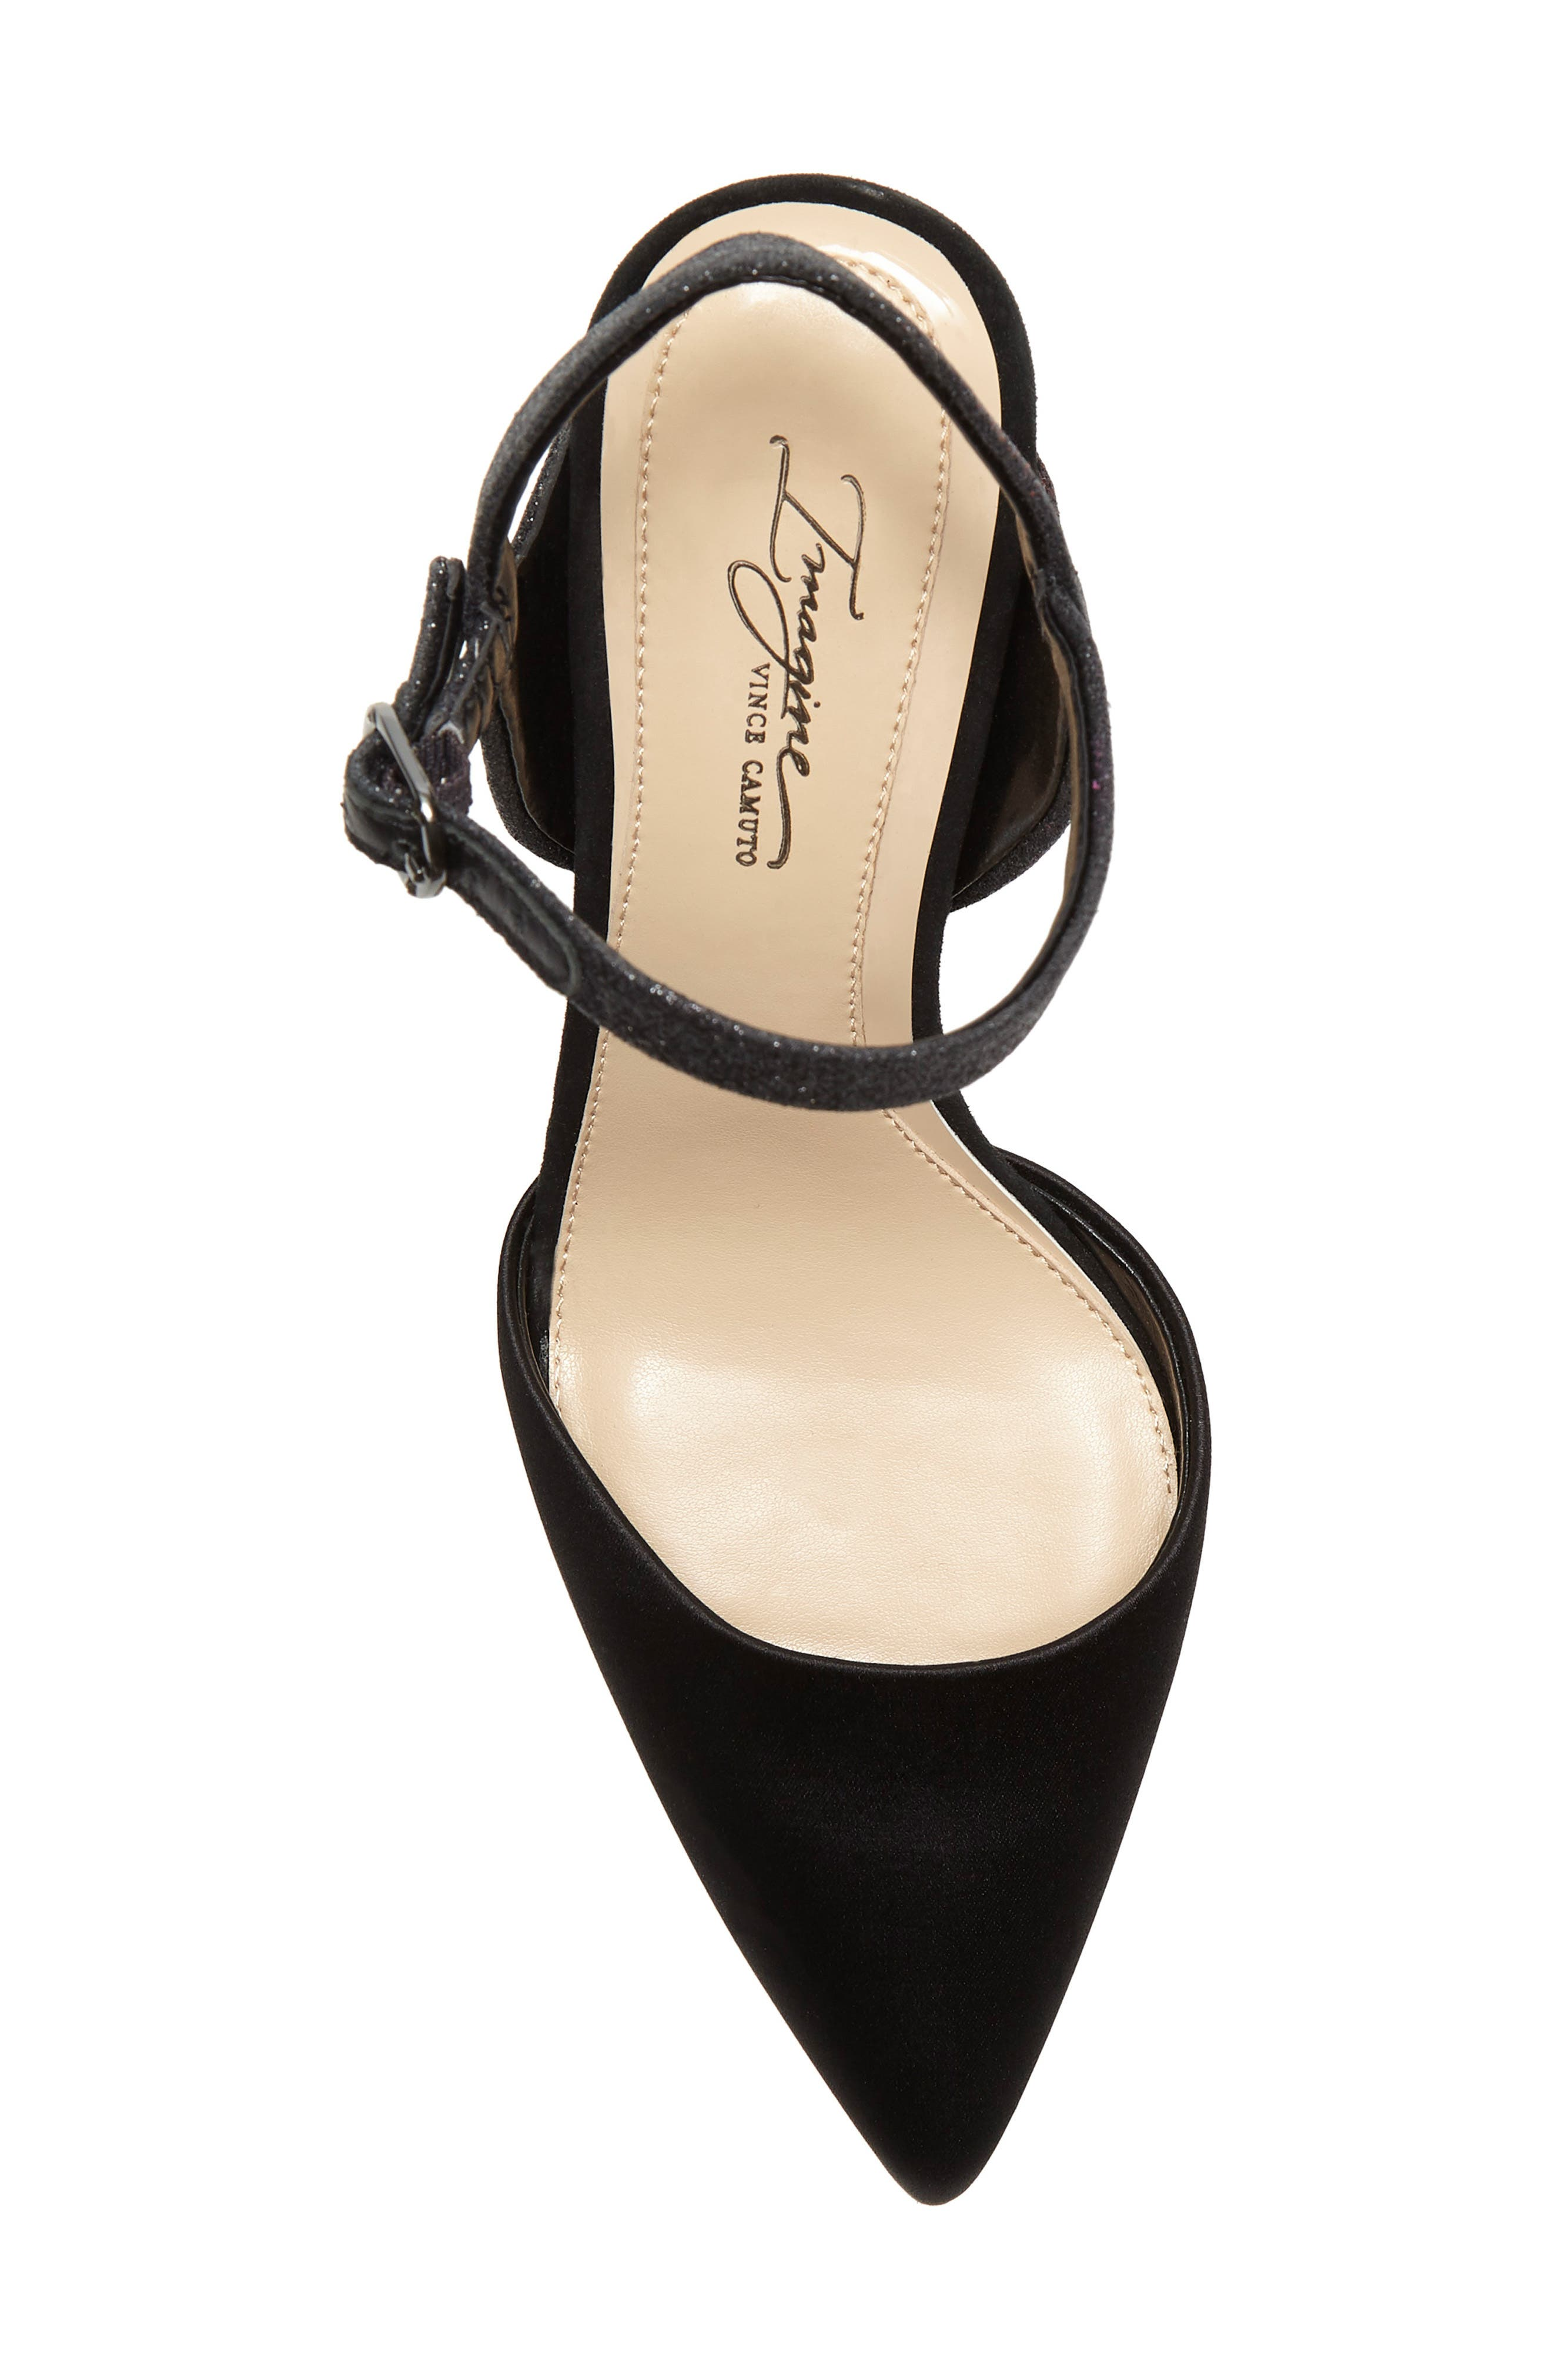 IMAGINE BY VINCE CAMUTO, Glora Pointy Toe Pump, Alternate thumbnail 5, color, BLACK SATIN